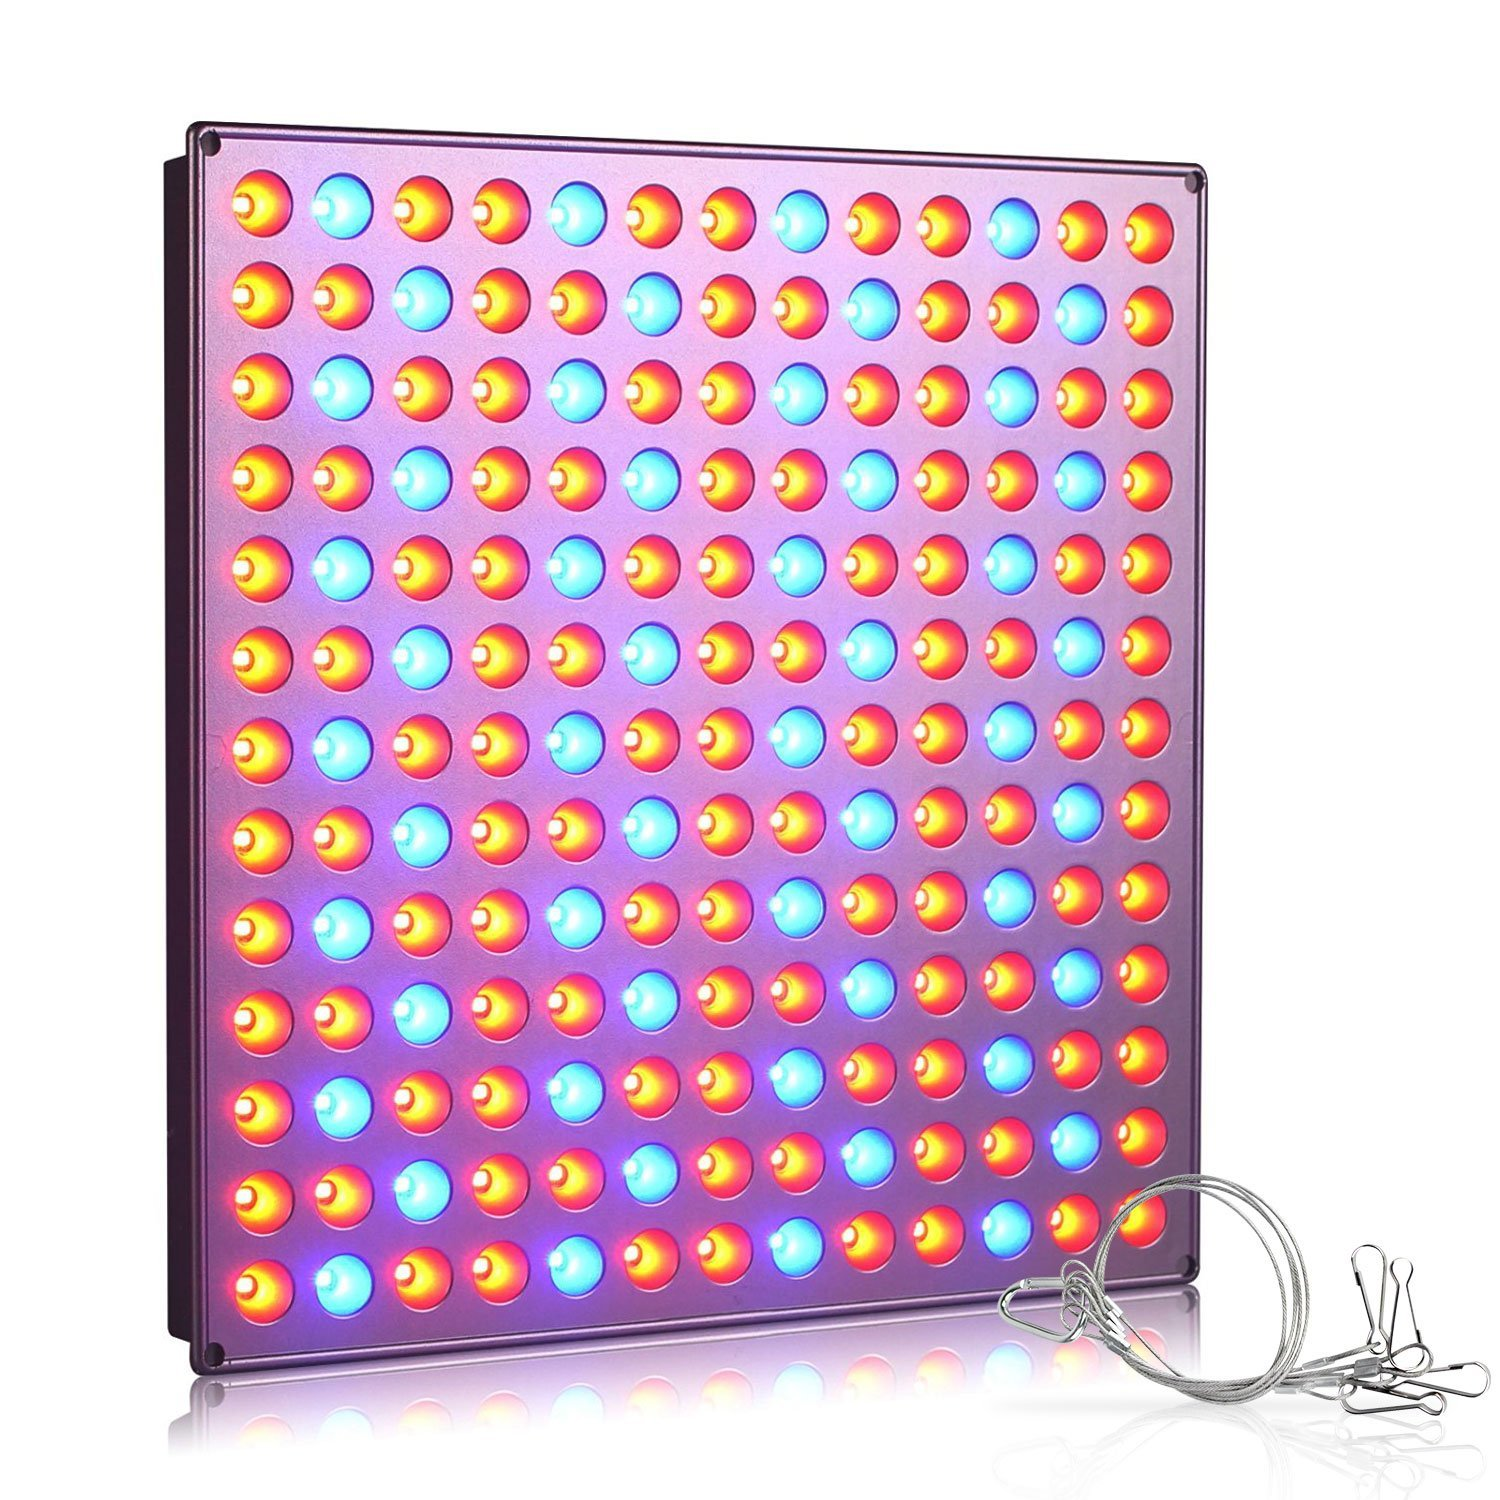 Roleadro 45 Watt Panel LED Grow Light